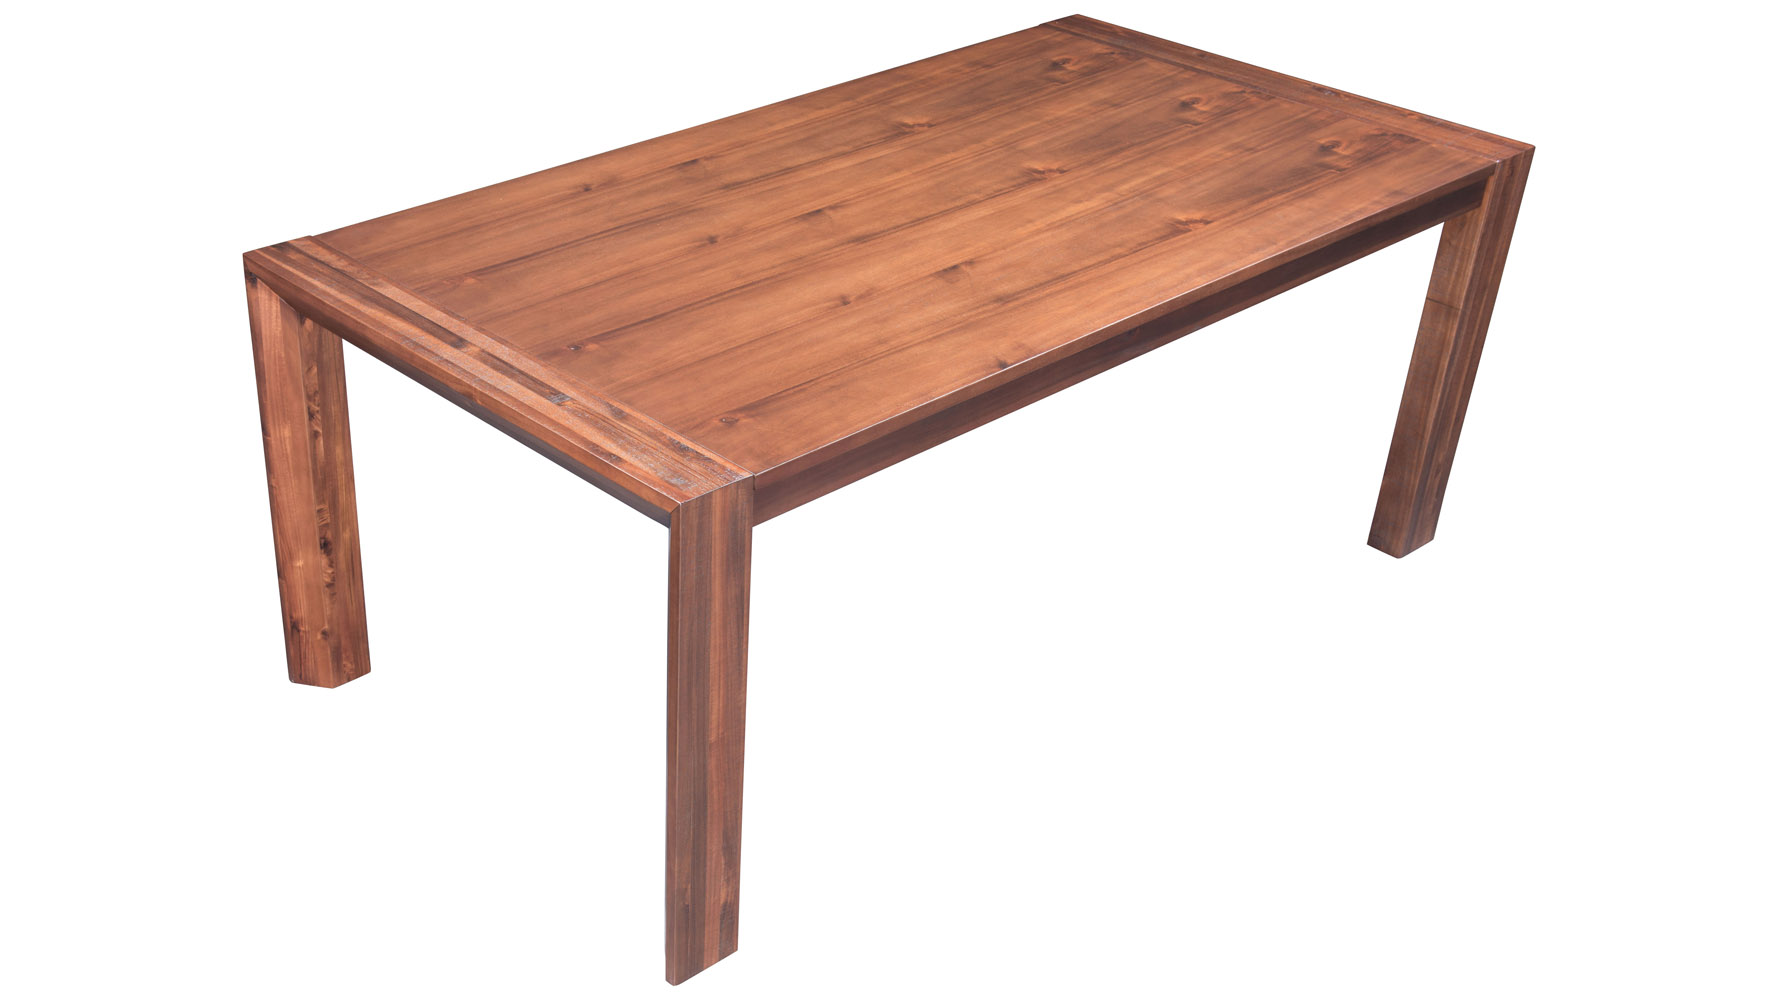 Acacia Dining Table Colville Acacia Wood Extension Dining Table Chestnut